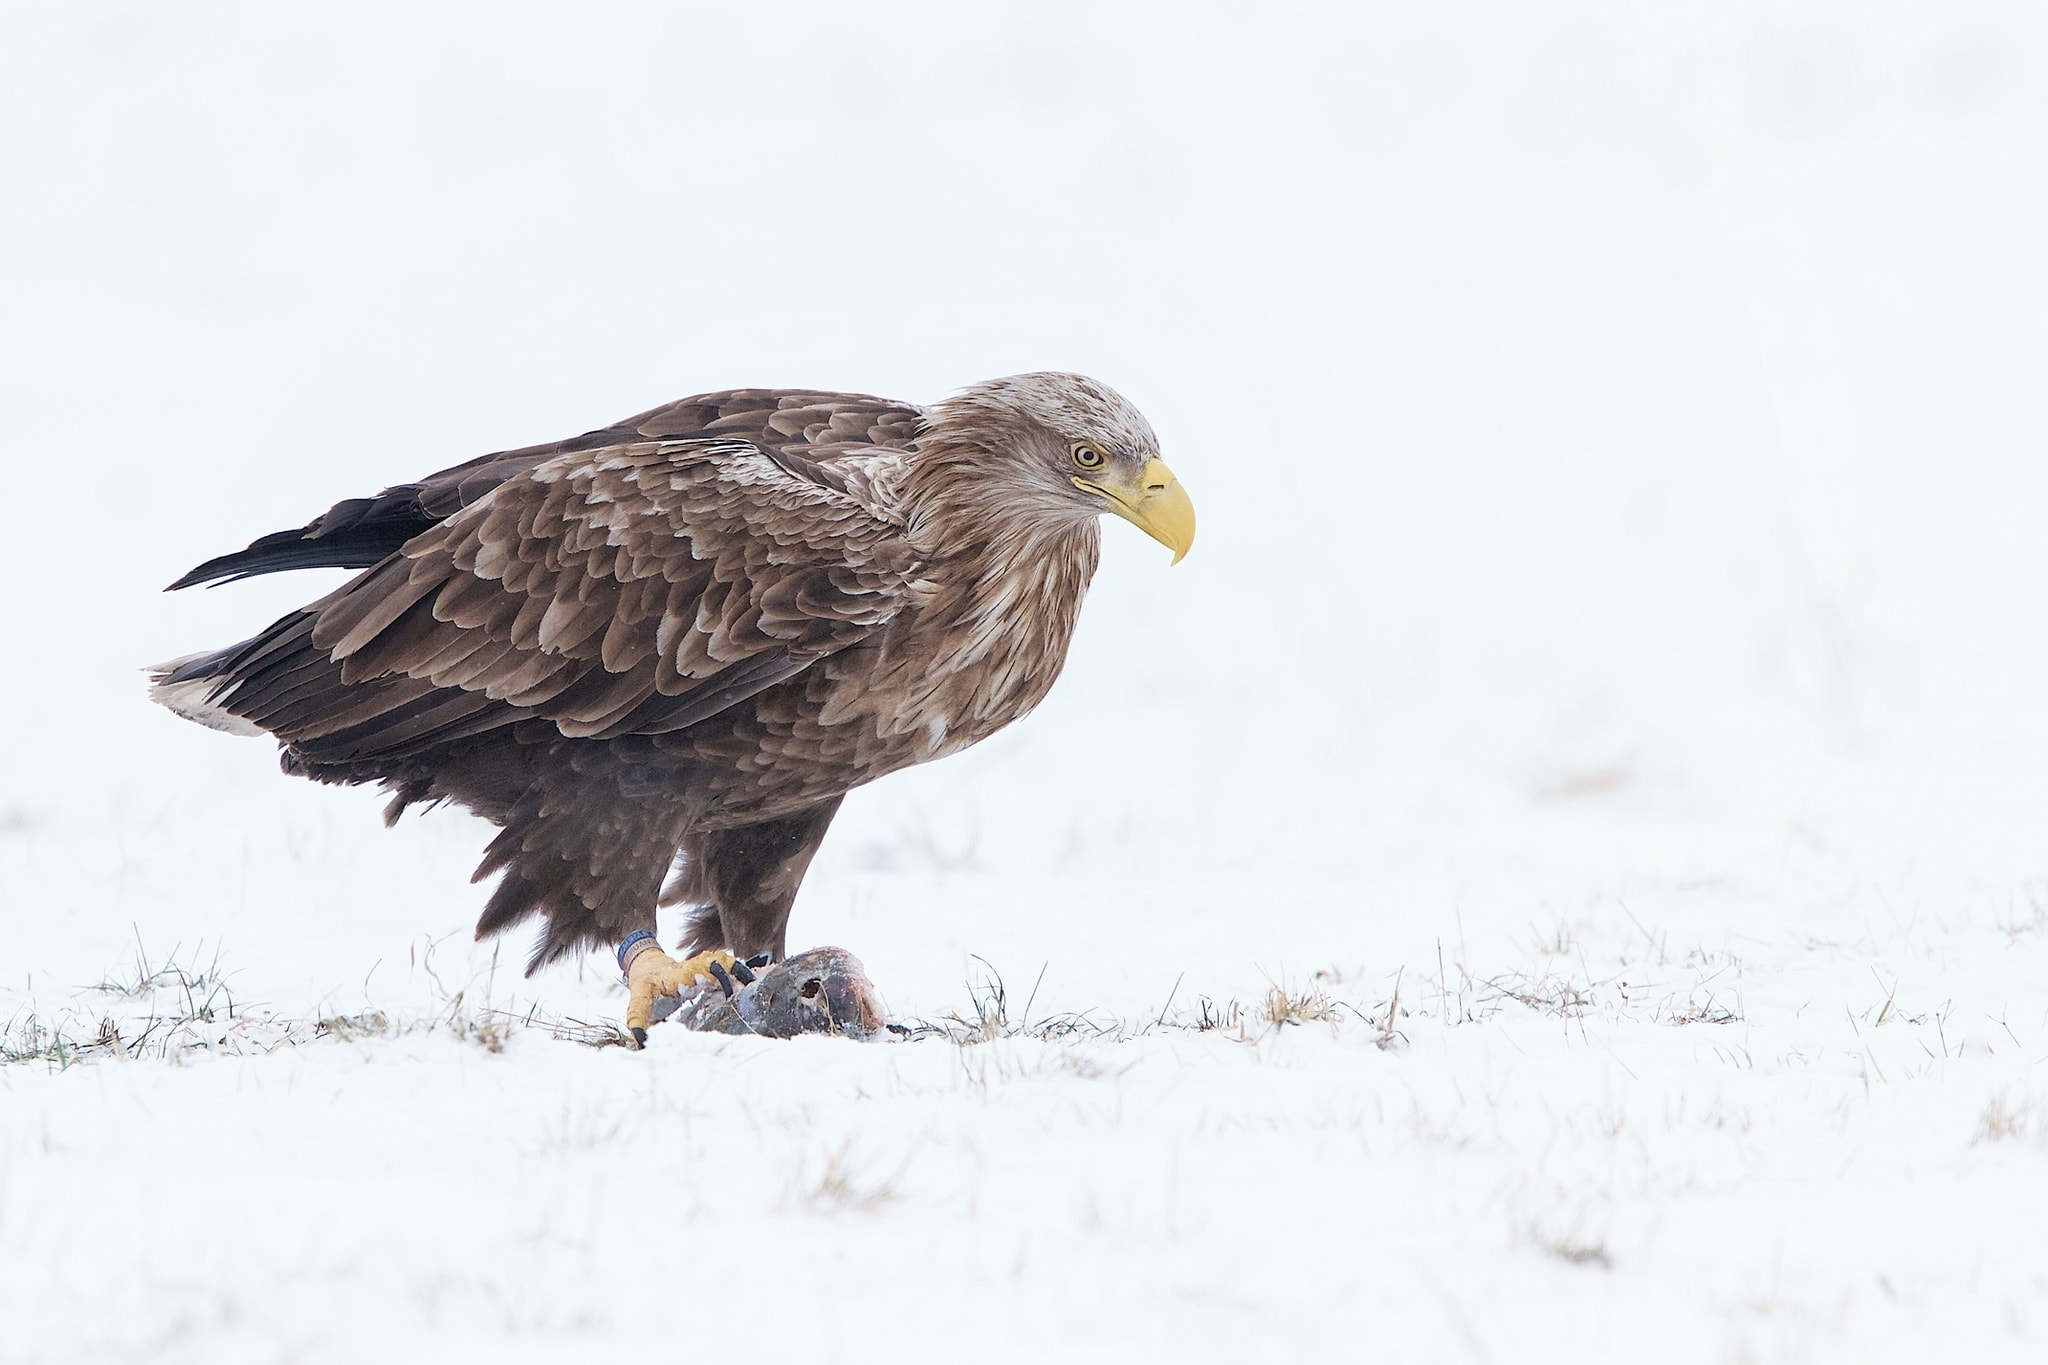 One Of The White Tailed Sea Eagles On The Snow Of A Frozen Pasture Photographed At The Locations Used For The NaturesLens White Tailed Sea Eagles Of Lithuania Photography Holiday